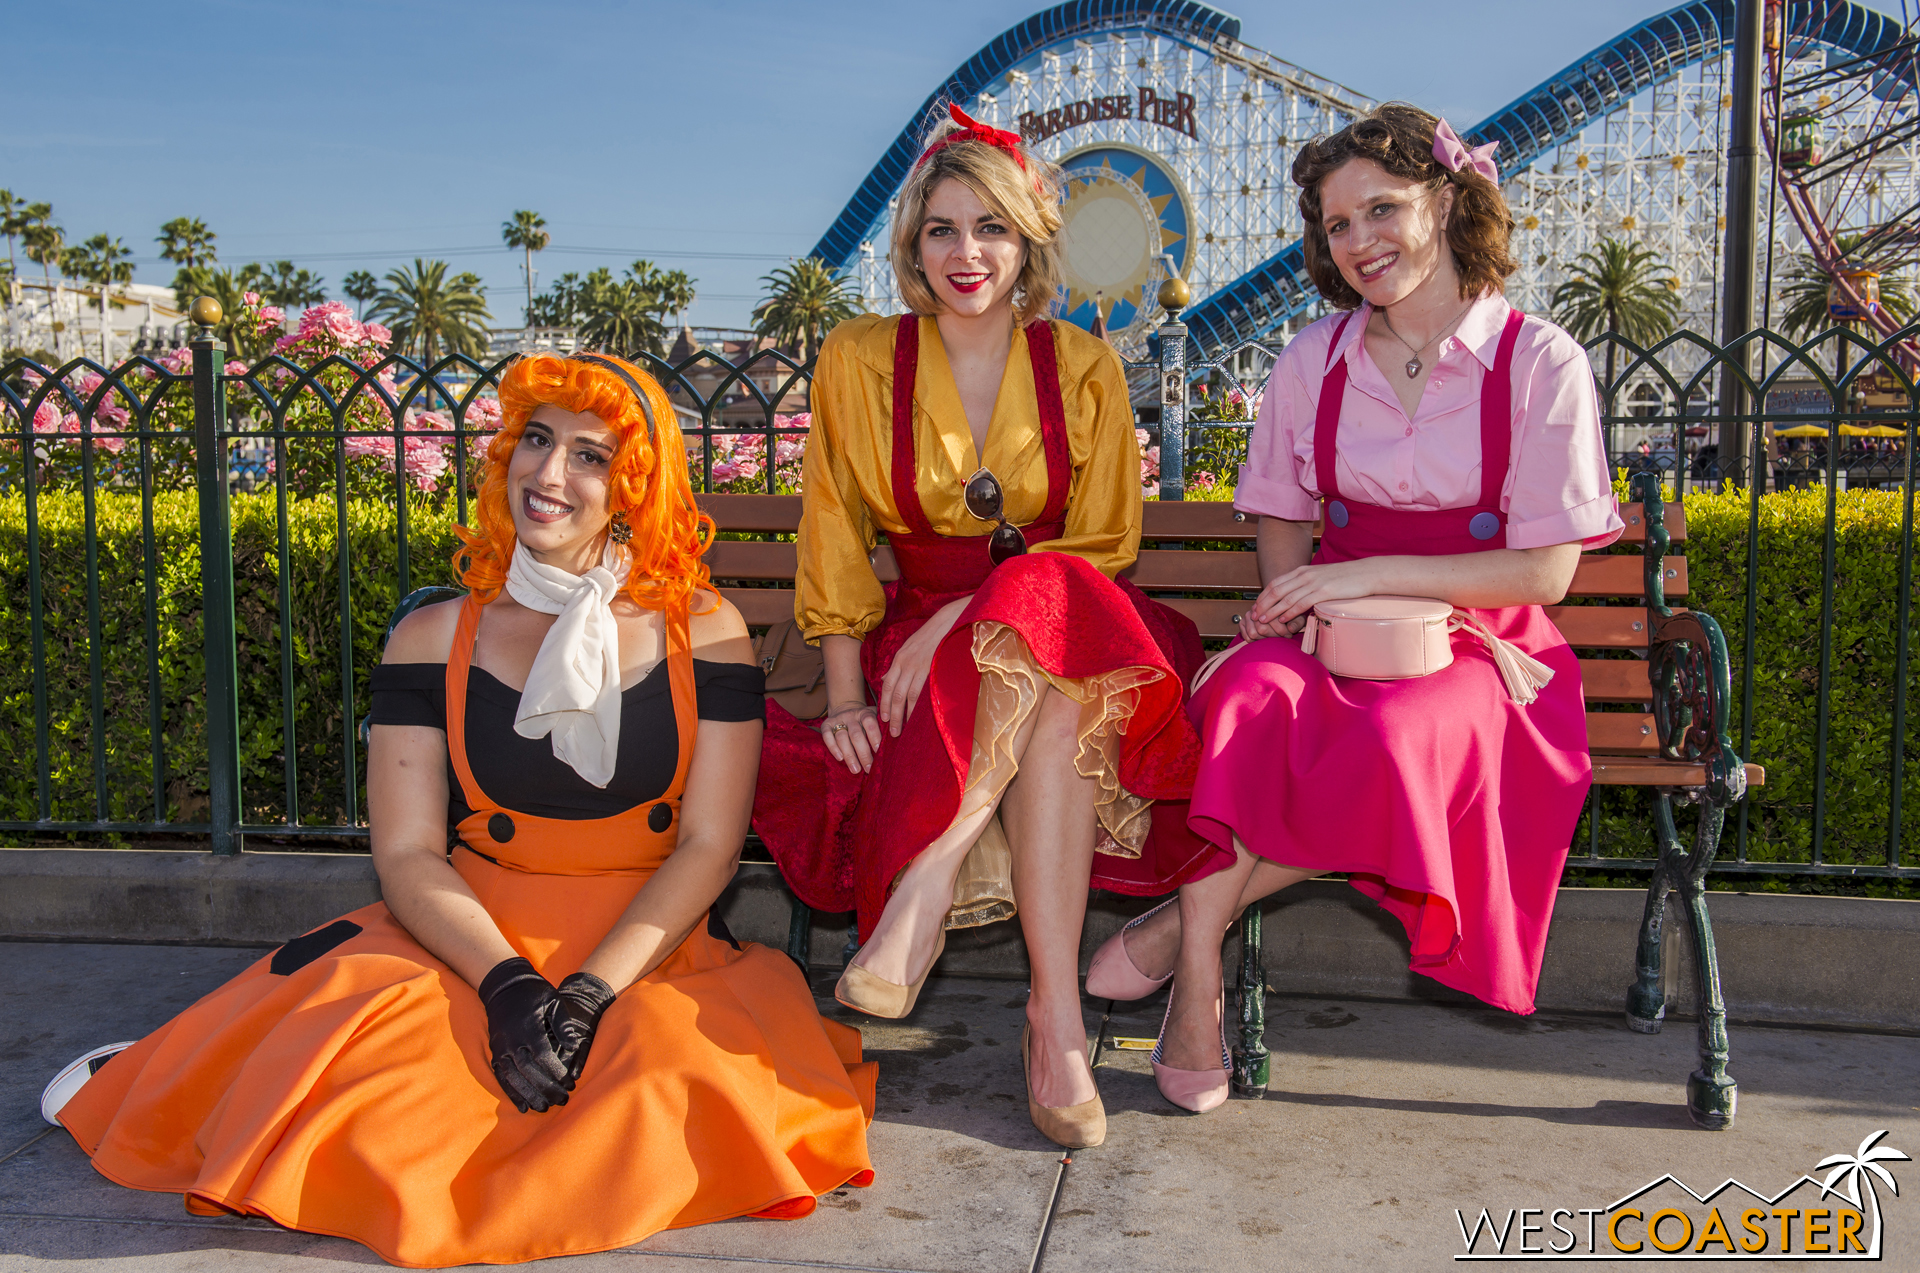 """Here's Tigger, Pooh, and Piglet again. They may look adorable here, but at least one of these ladies will scare the """"Pooh"""" out of you at Dark Harbor come Halloween season."""